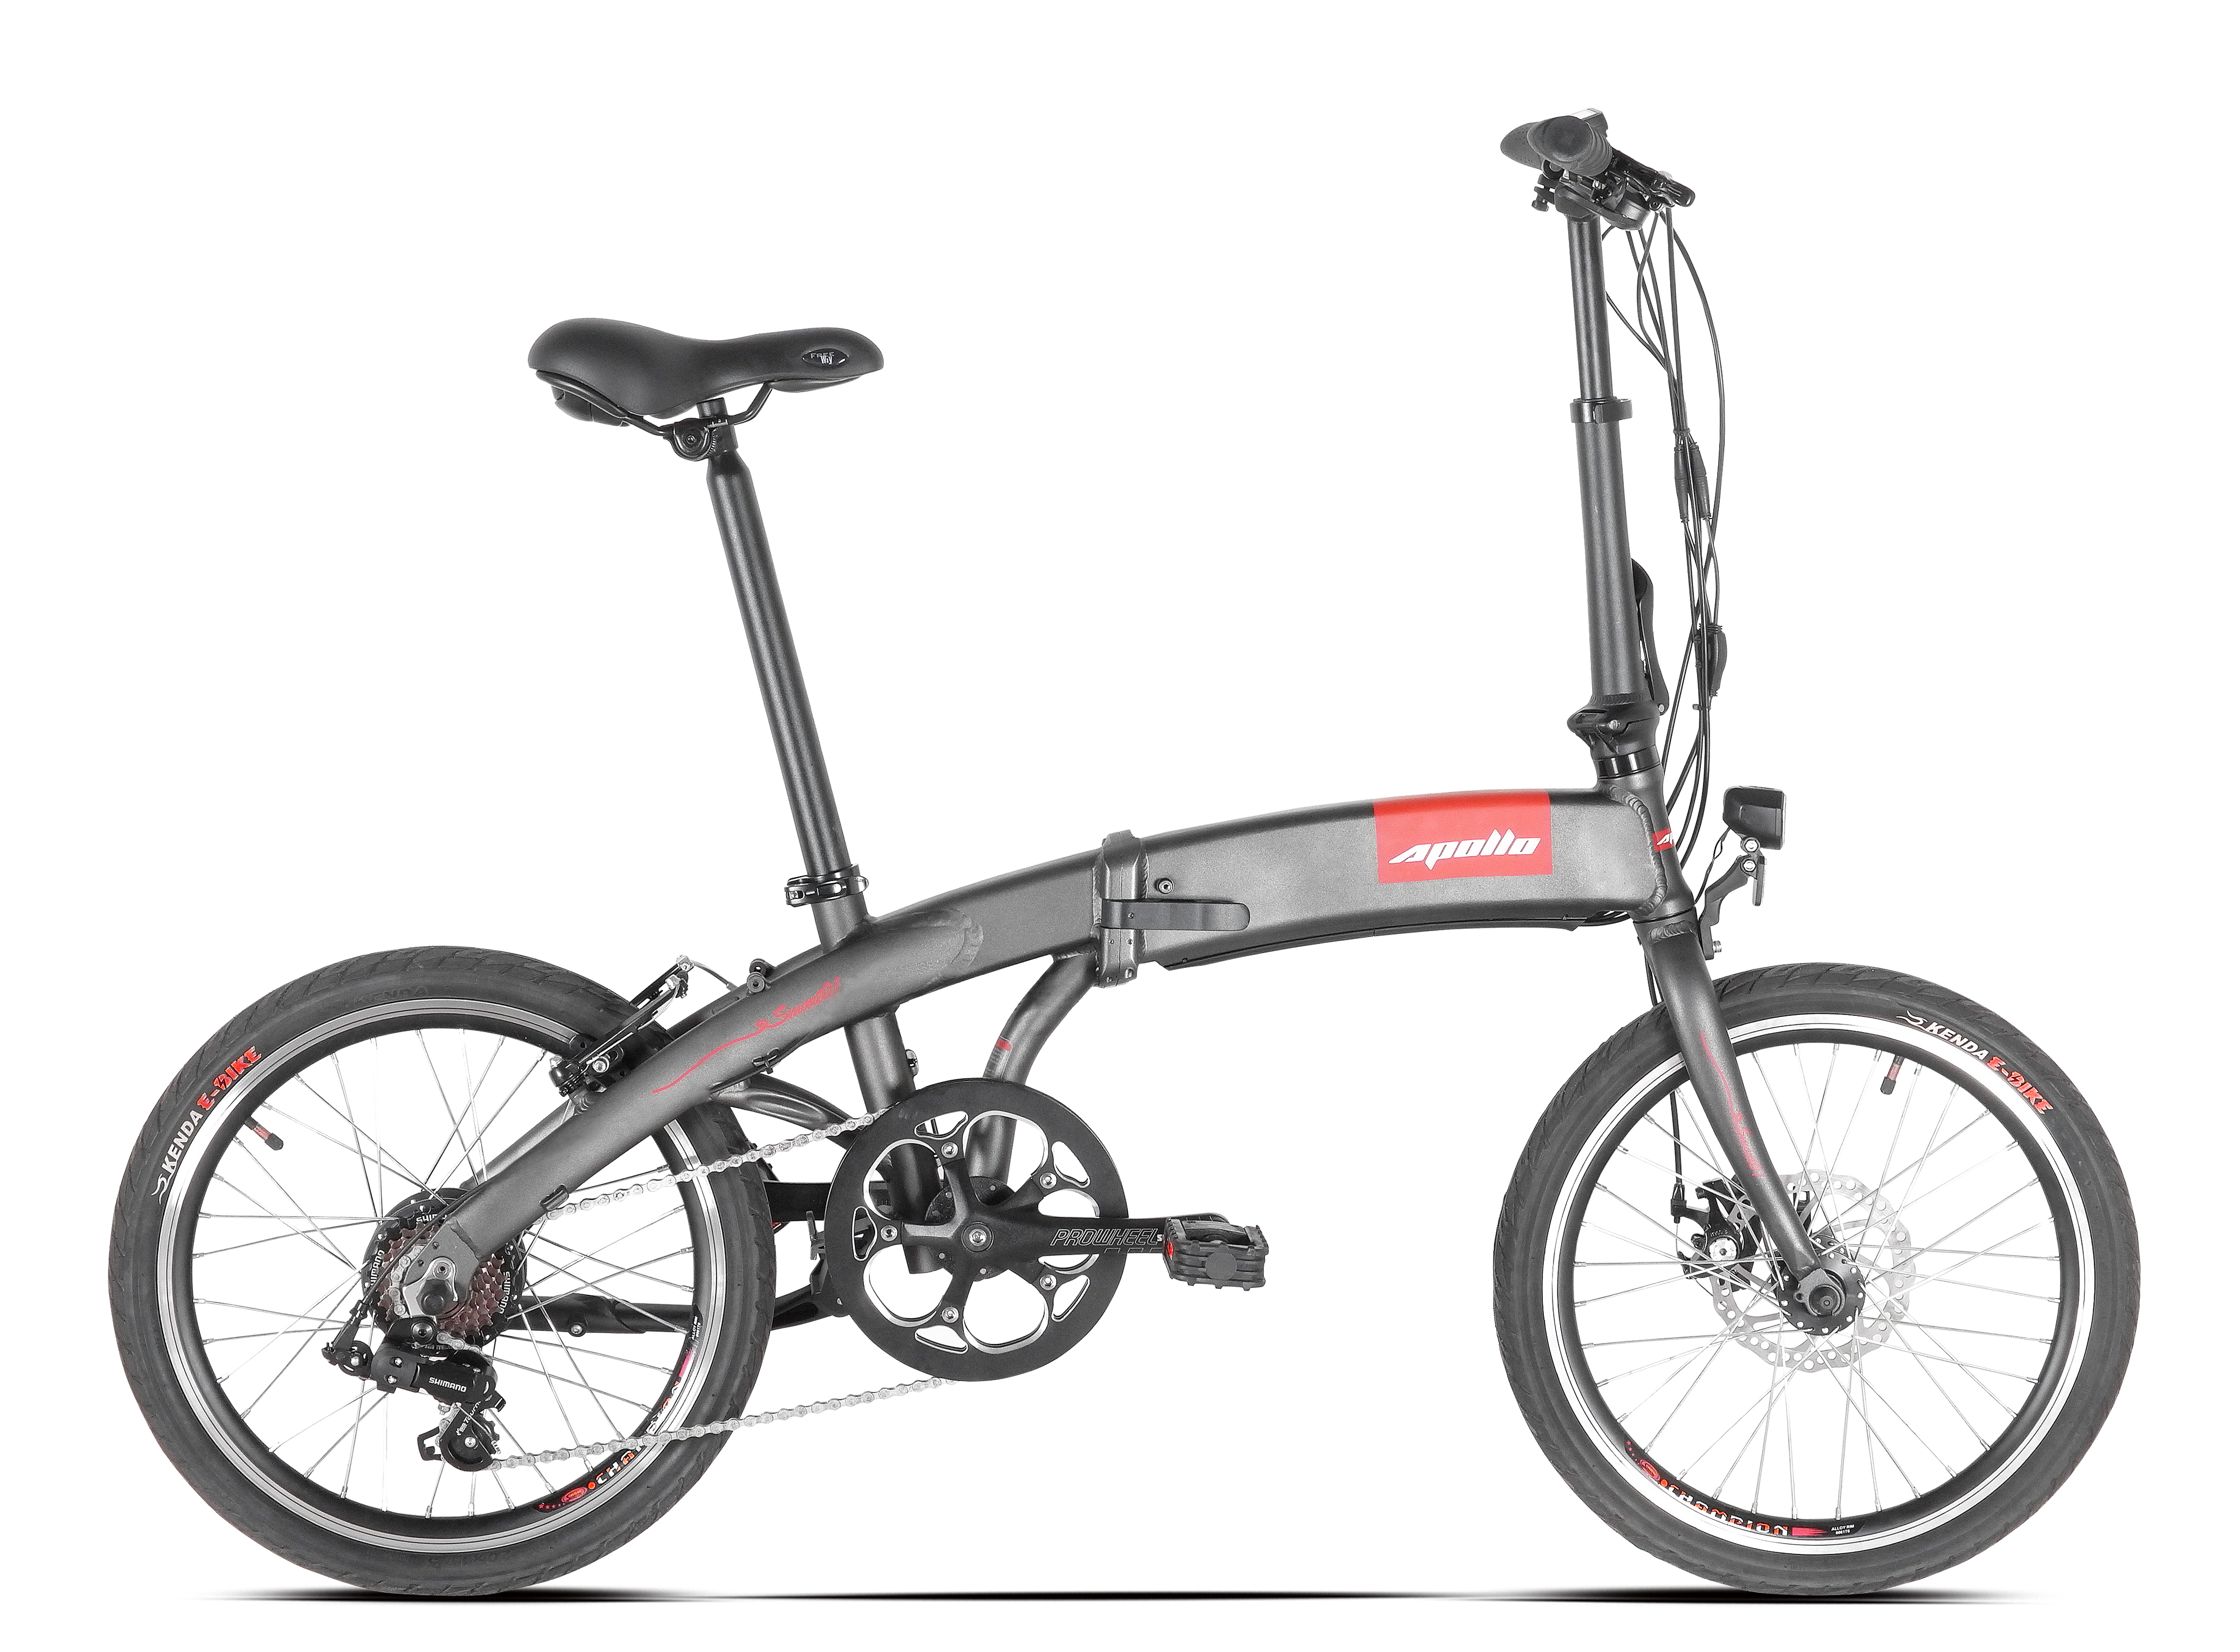 Smart 1s 'City' Folding Electric Bicycle